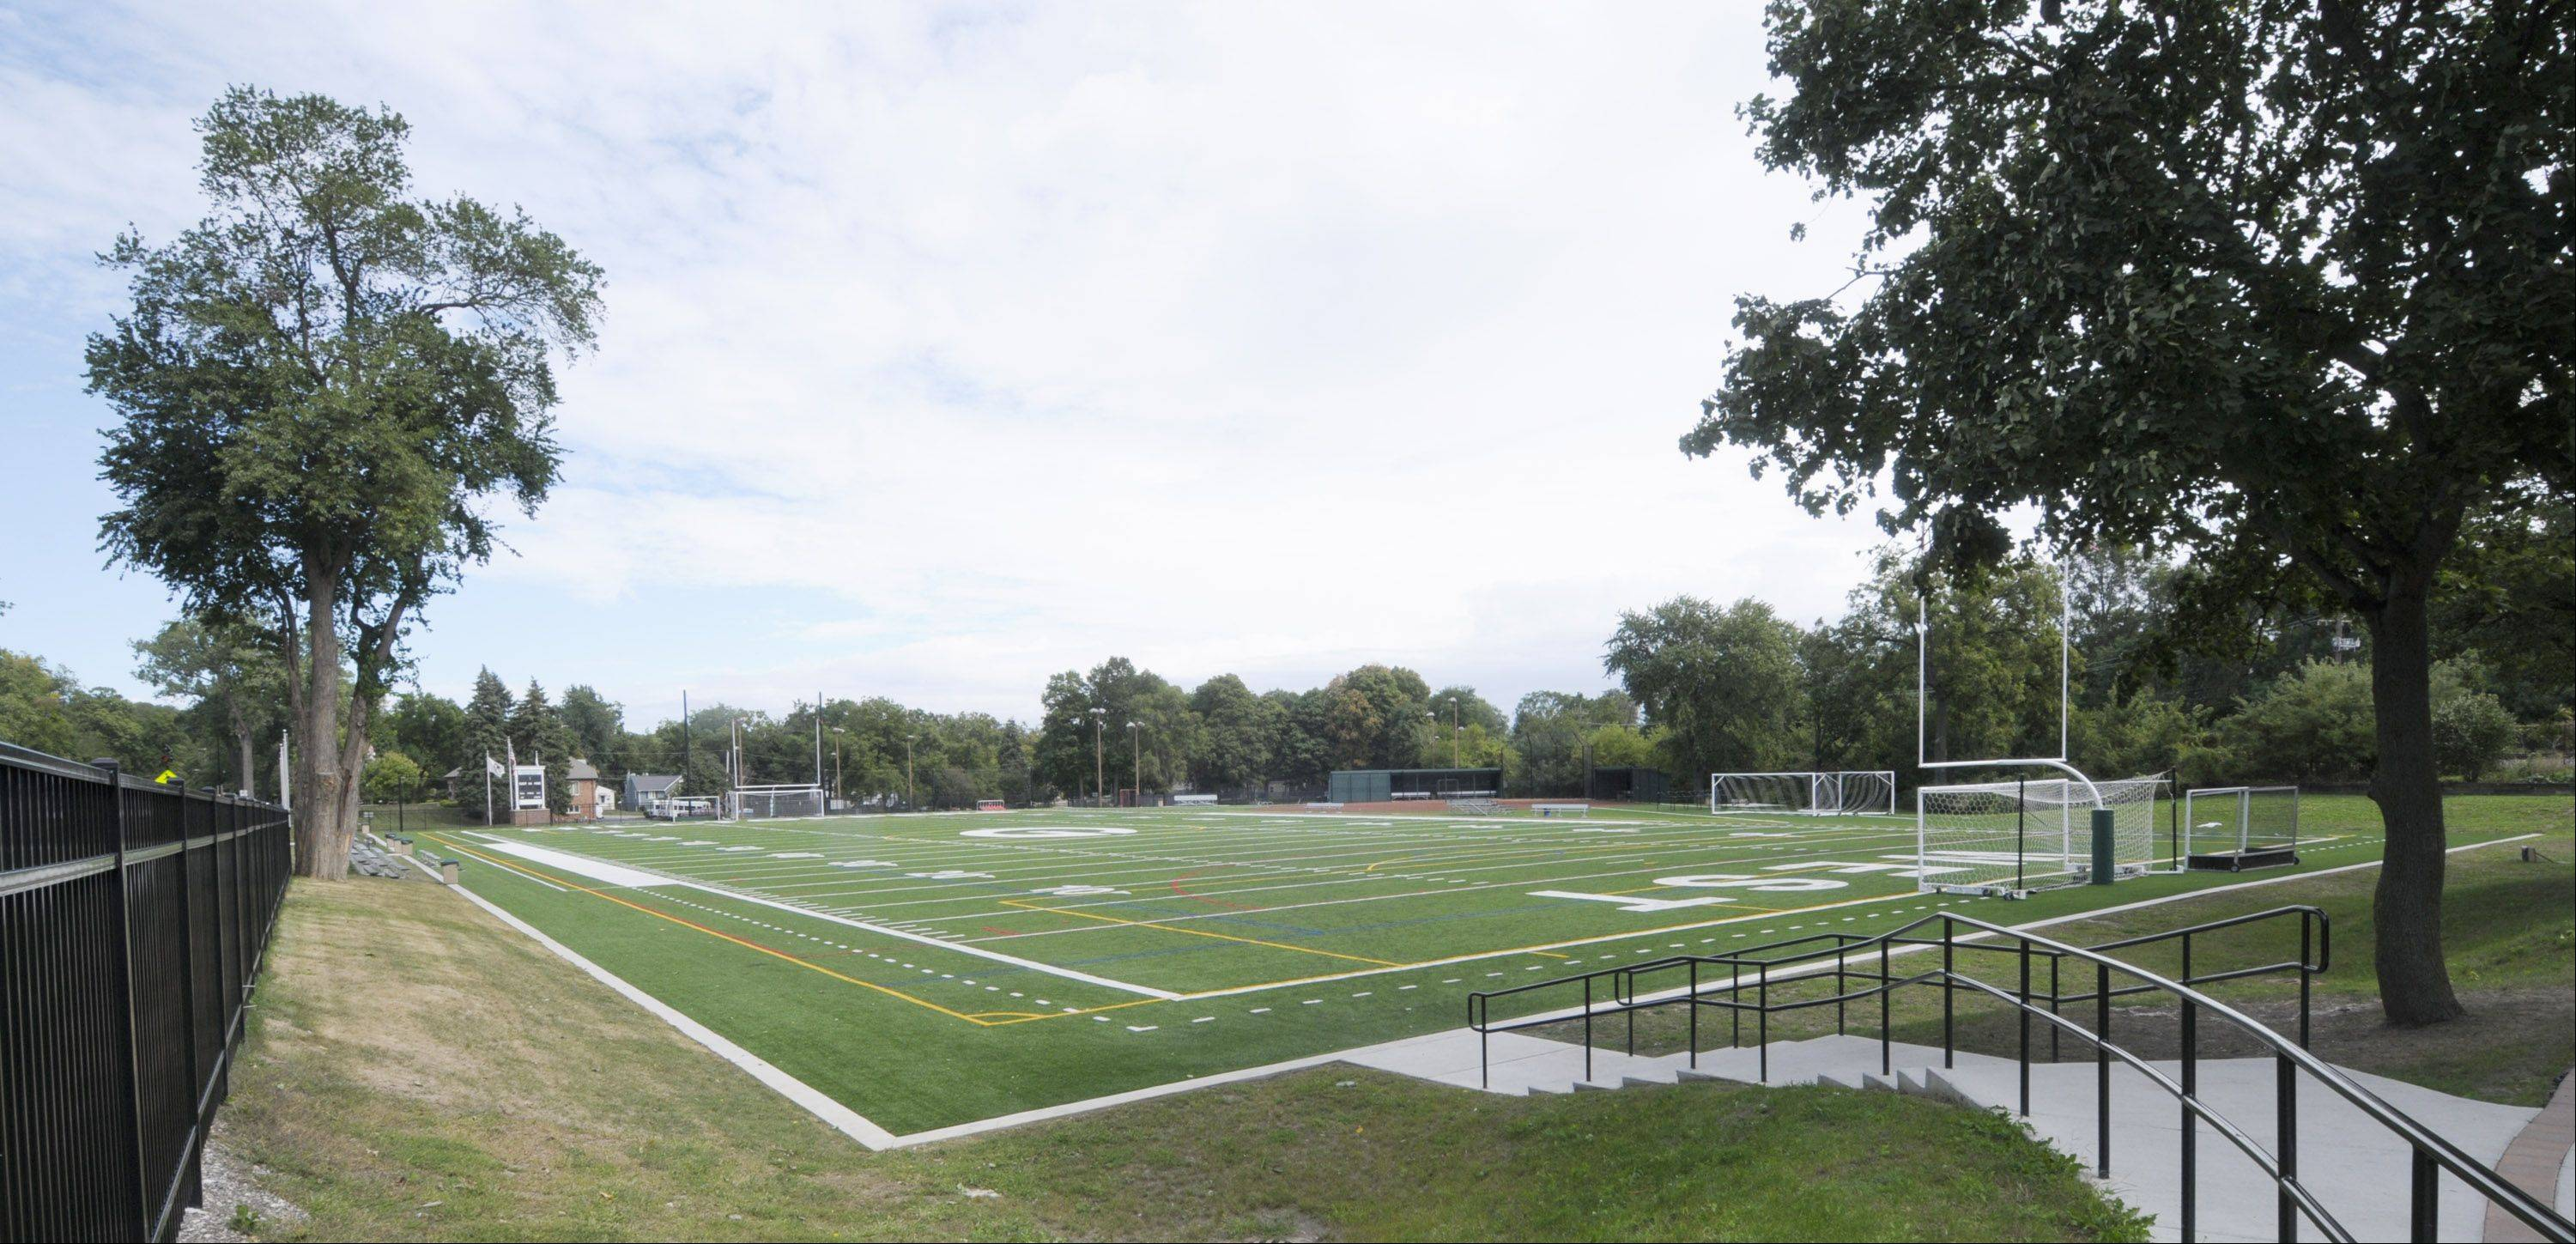 The price to install six light towers at Memorial Field in Glen Ellyn is about $75,000 less than original cost estimates.